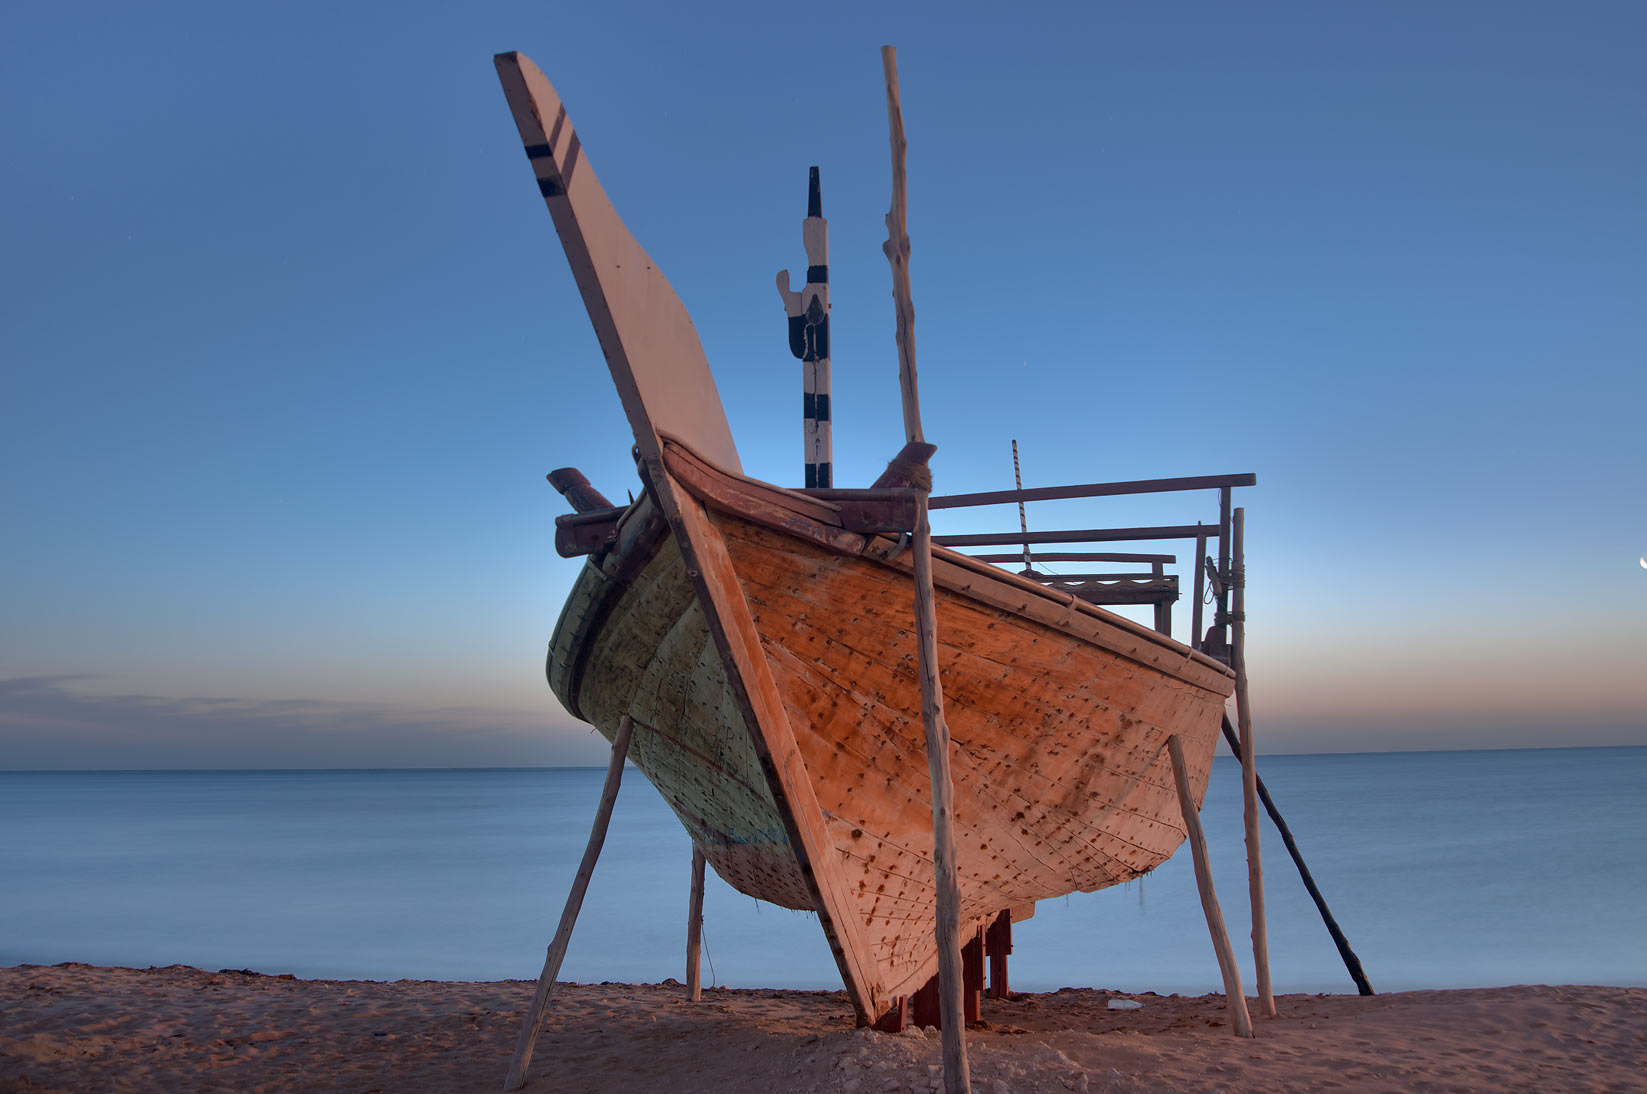 Beached dhow boat at sunrise. Al Wakrah, Qatar